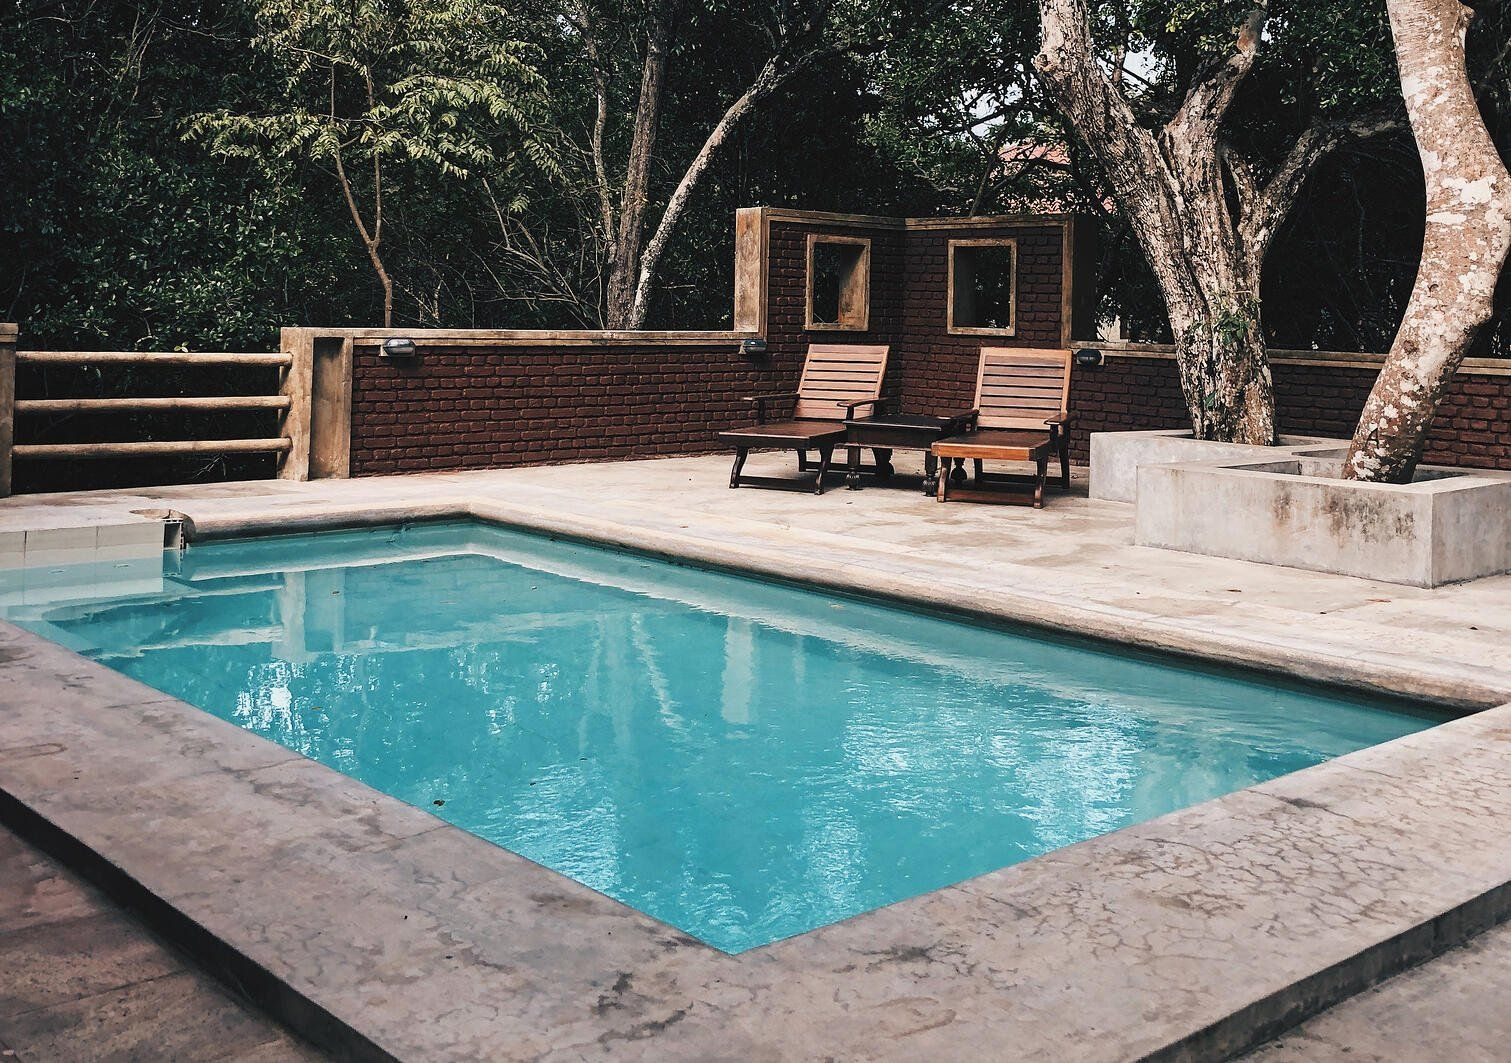 What Is A Cocktail Pool Designs Dimensions Cost And More In 2020 Backyard Pool Cost Small Pool Design Pool Cost